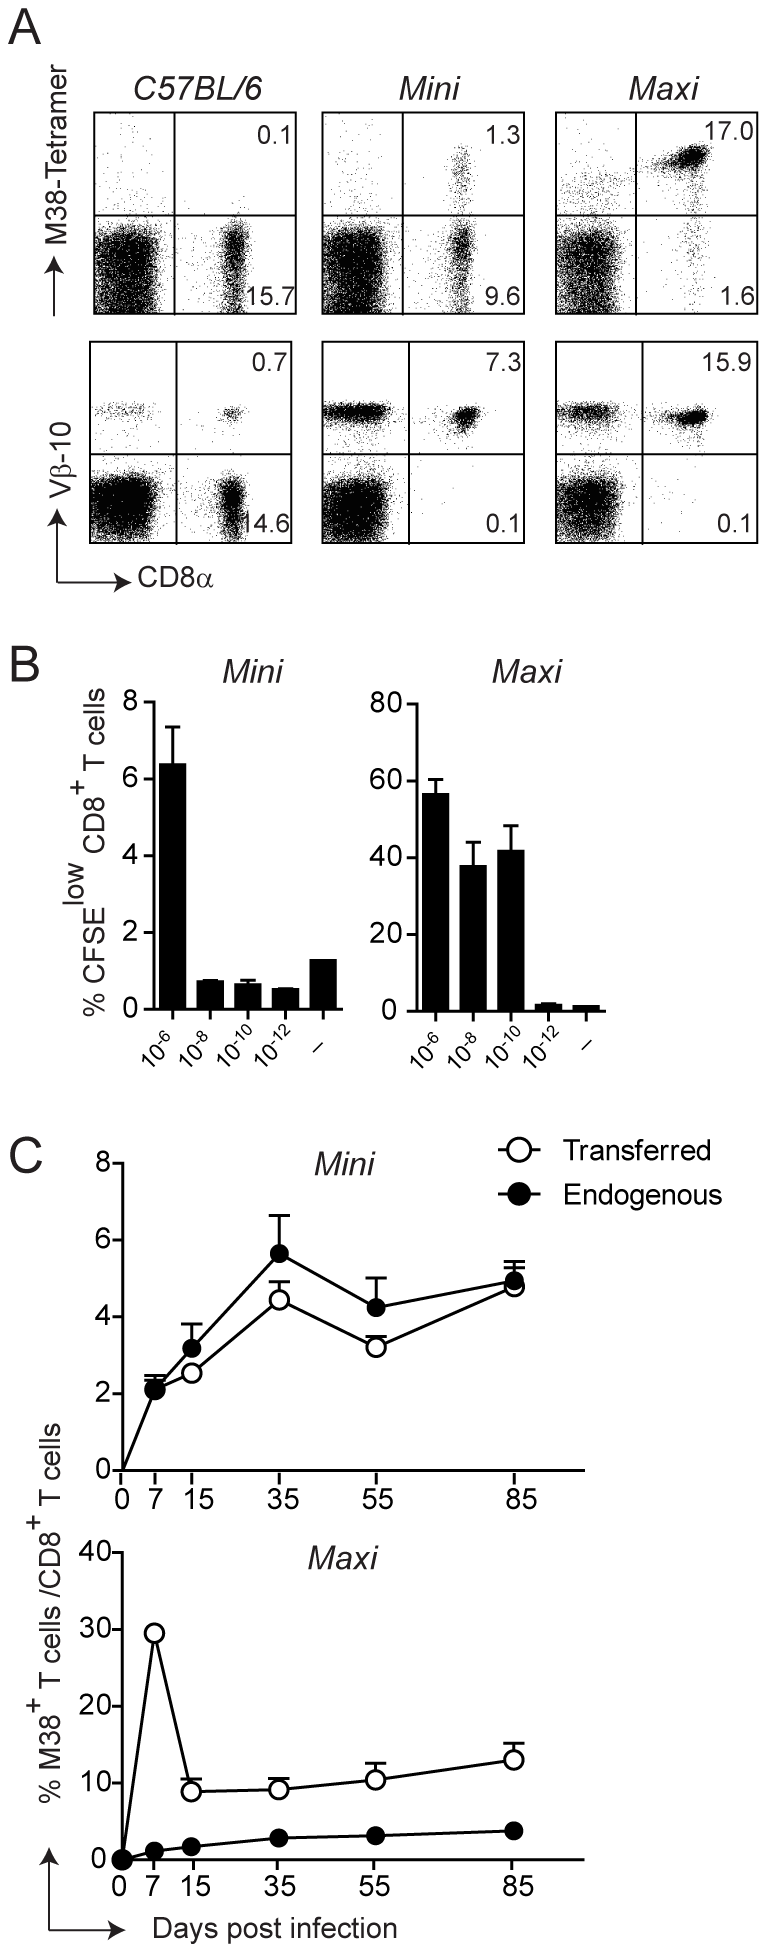 Generation of MHC class I-restricted TCR transgenic mice with specificity for the M38 epitope of MCMV.